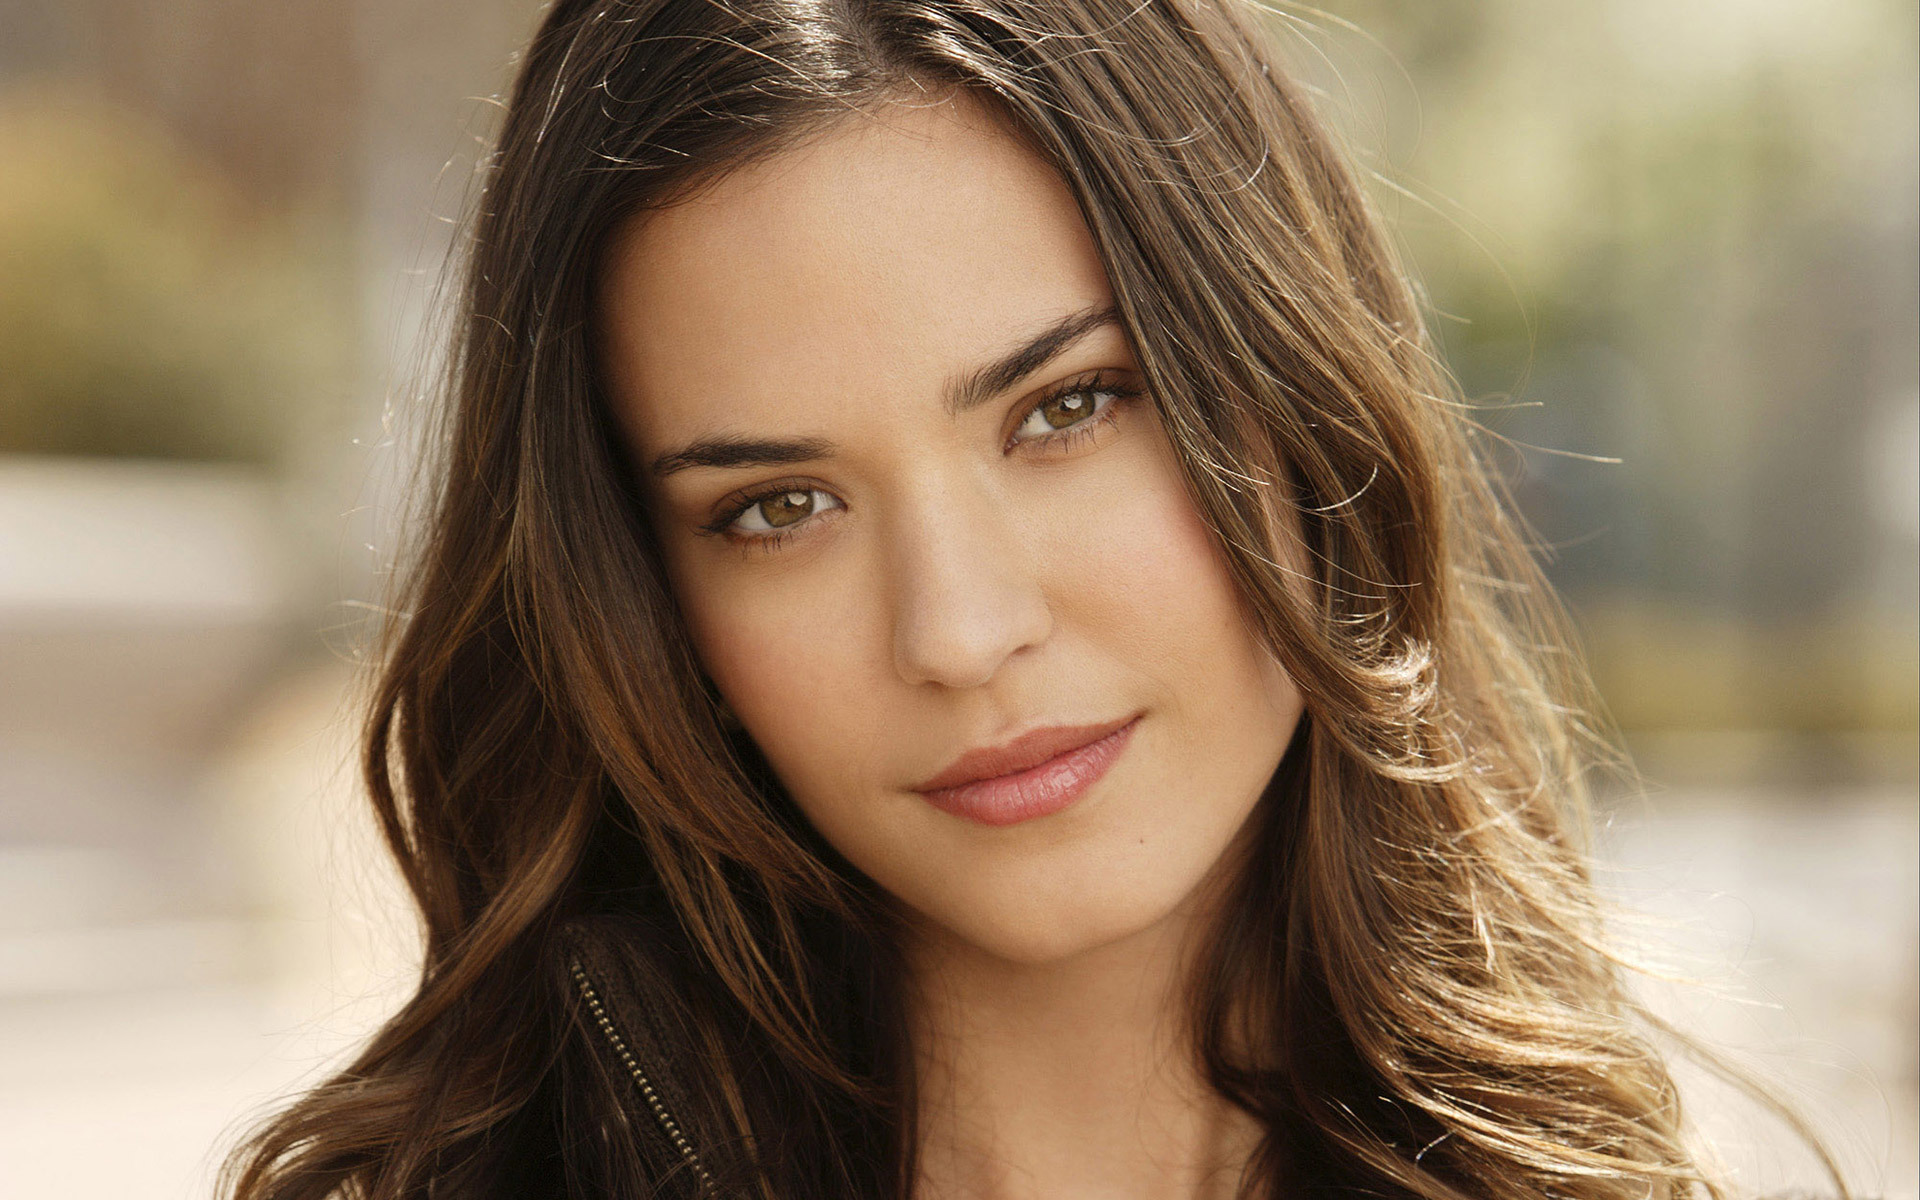 woman odette annable faces HD Wallpaper